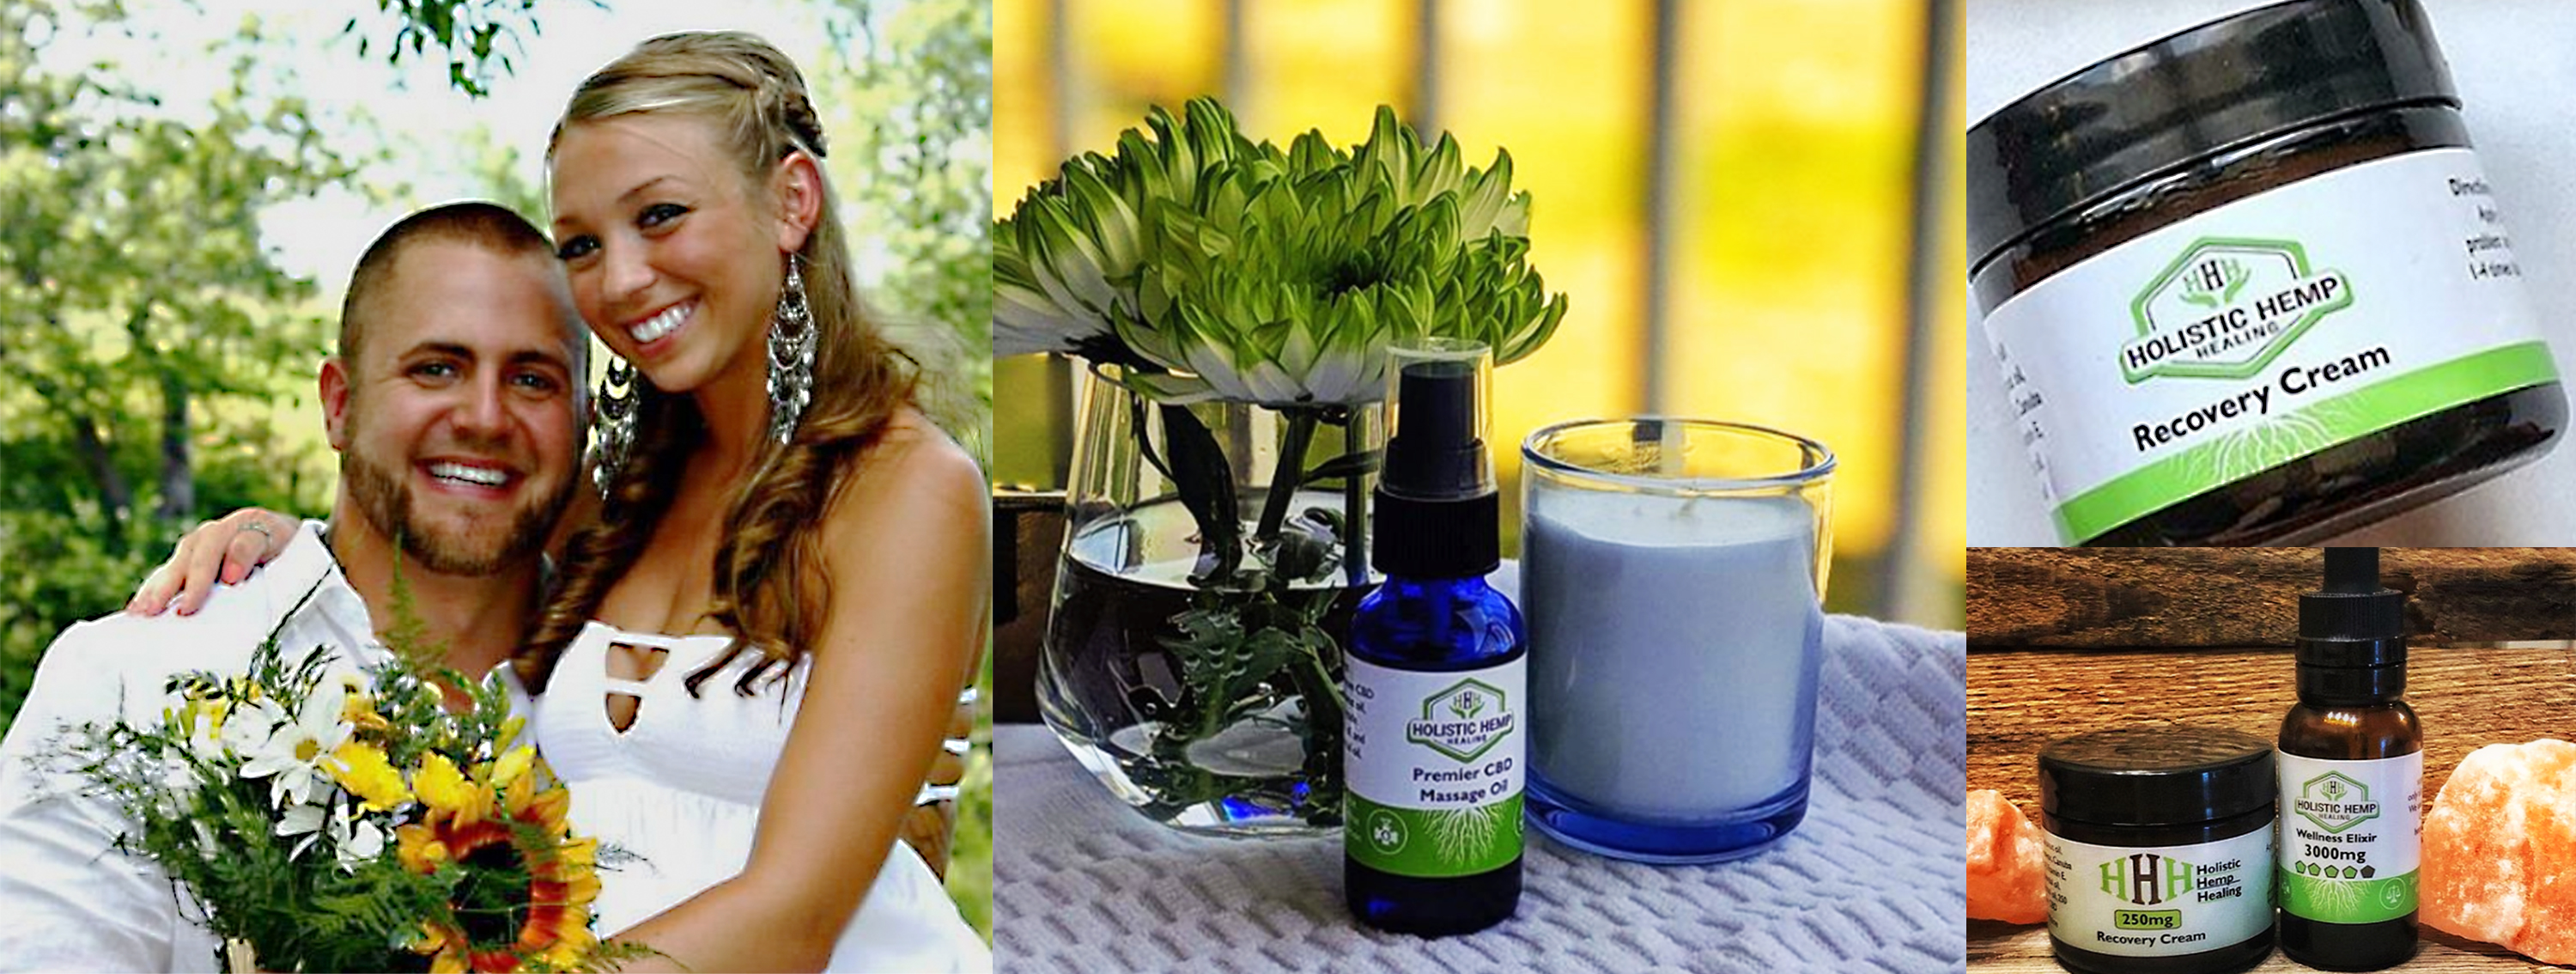 Holistic Hemp Healing image of founders, and several products